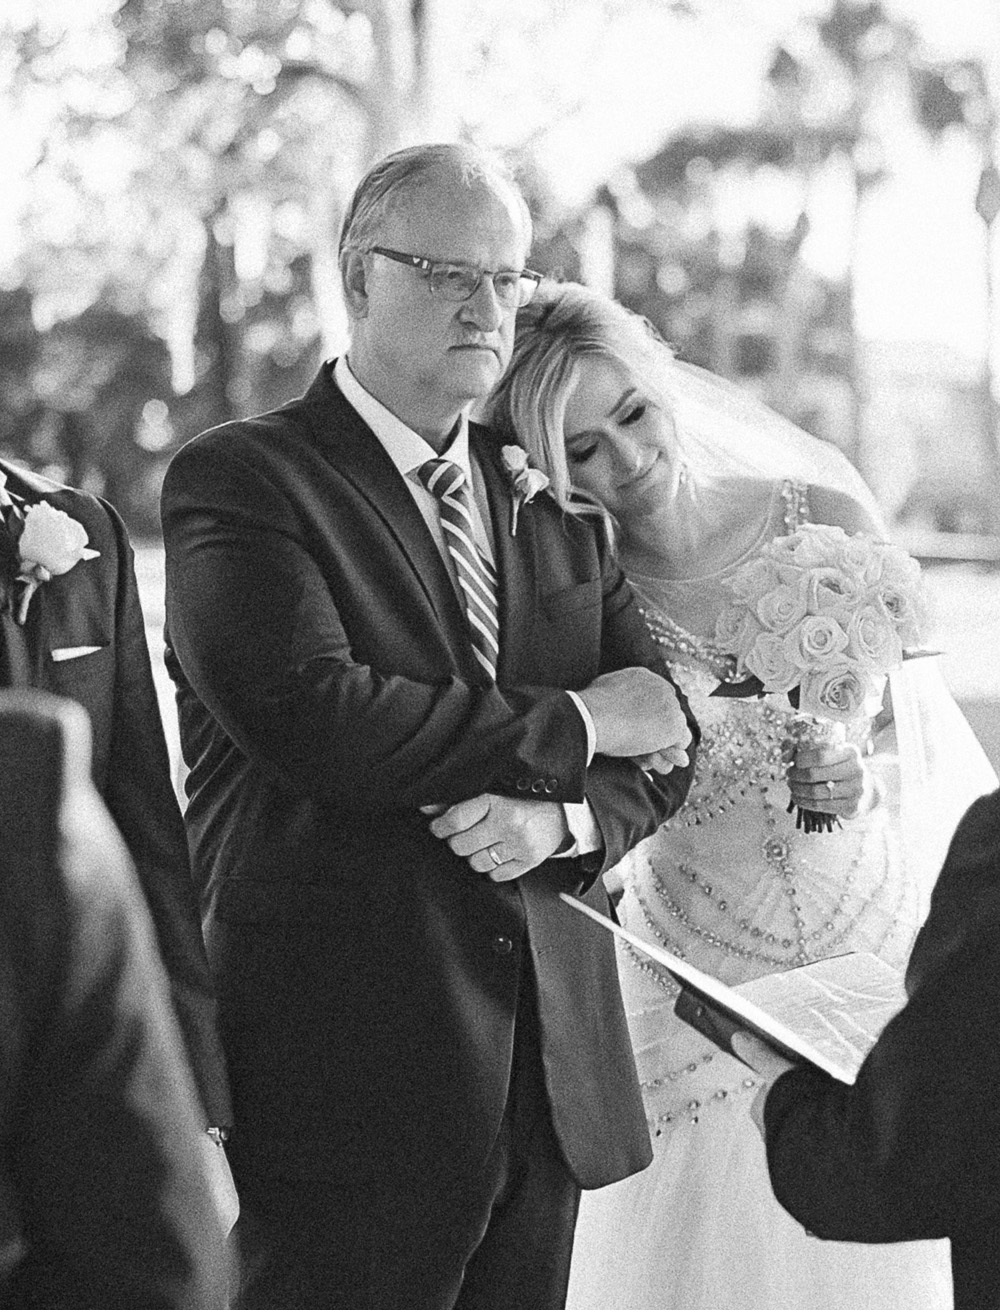 film_wedding_photographer_georgia.jpg